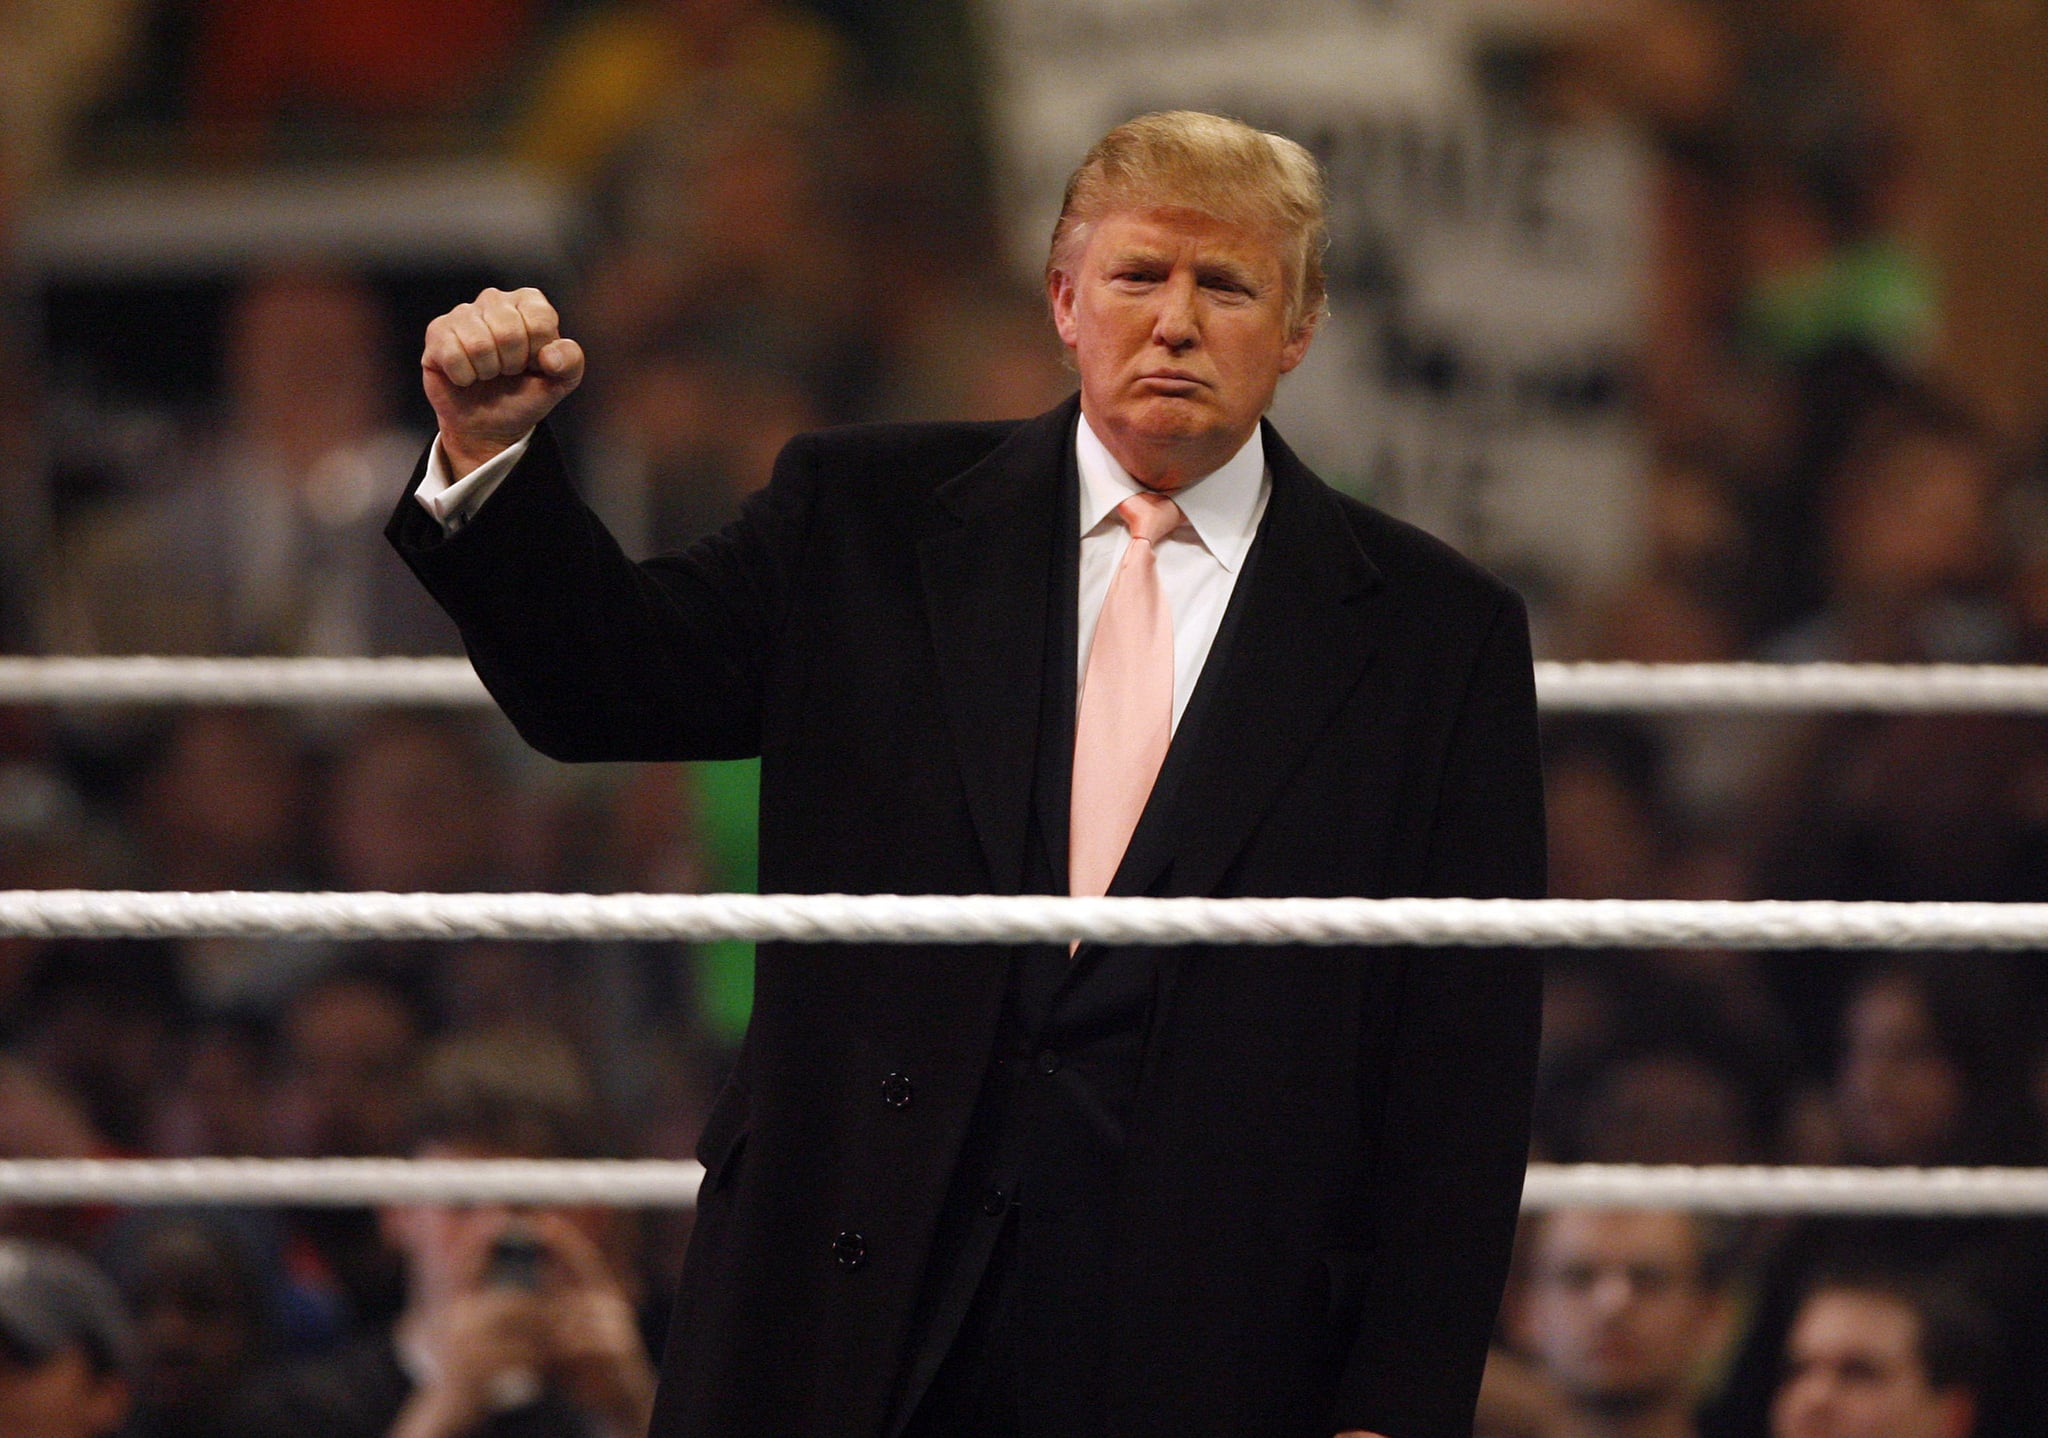 Image result for ROCKY TRUMP BOXING GIF